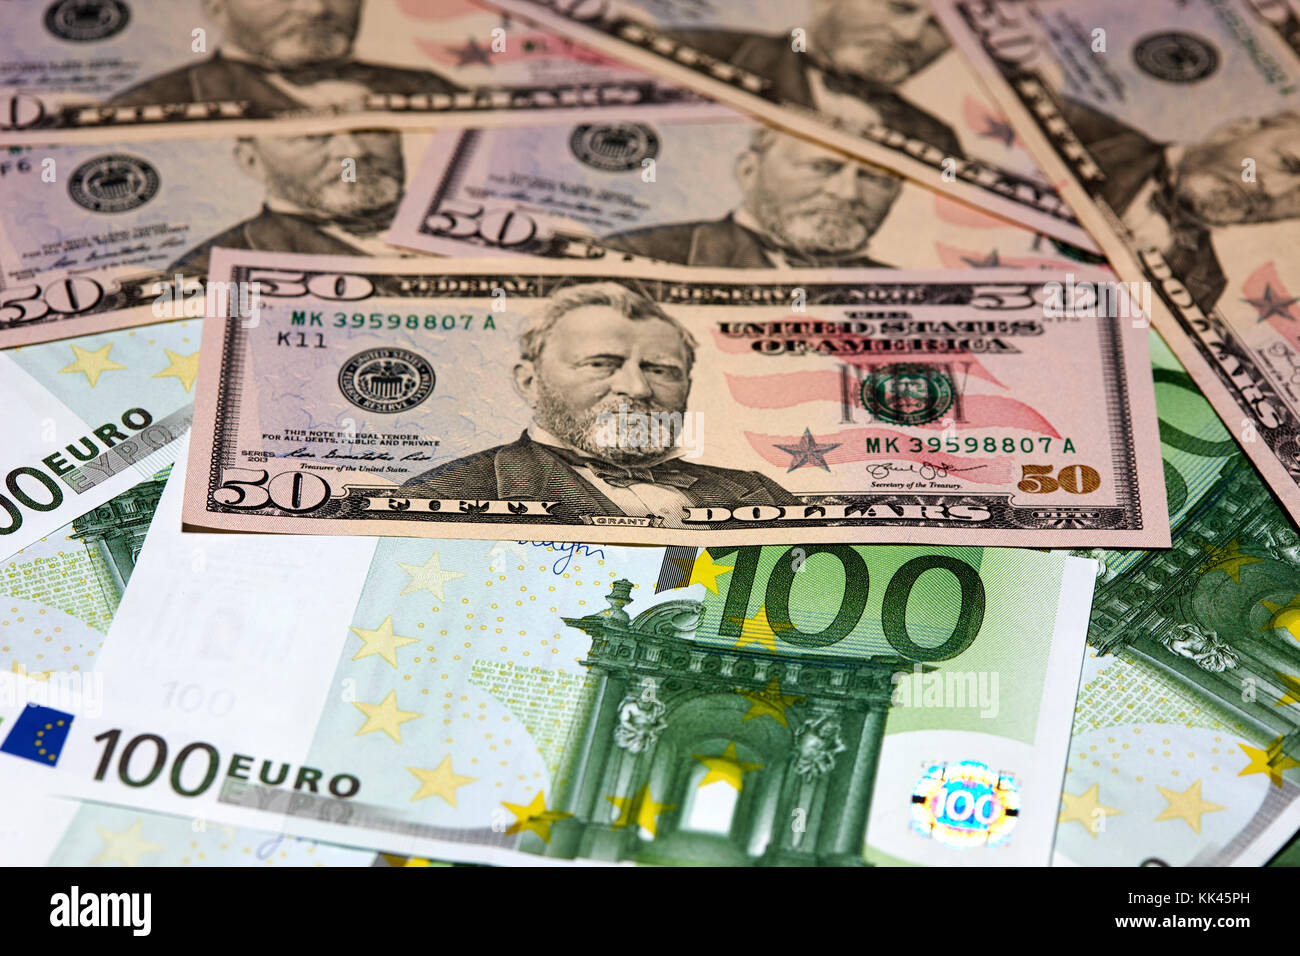 us dollars and euros cash - Stock Image